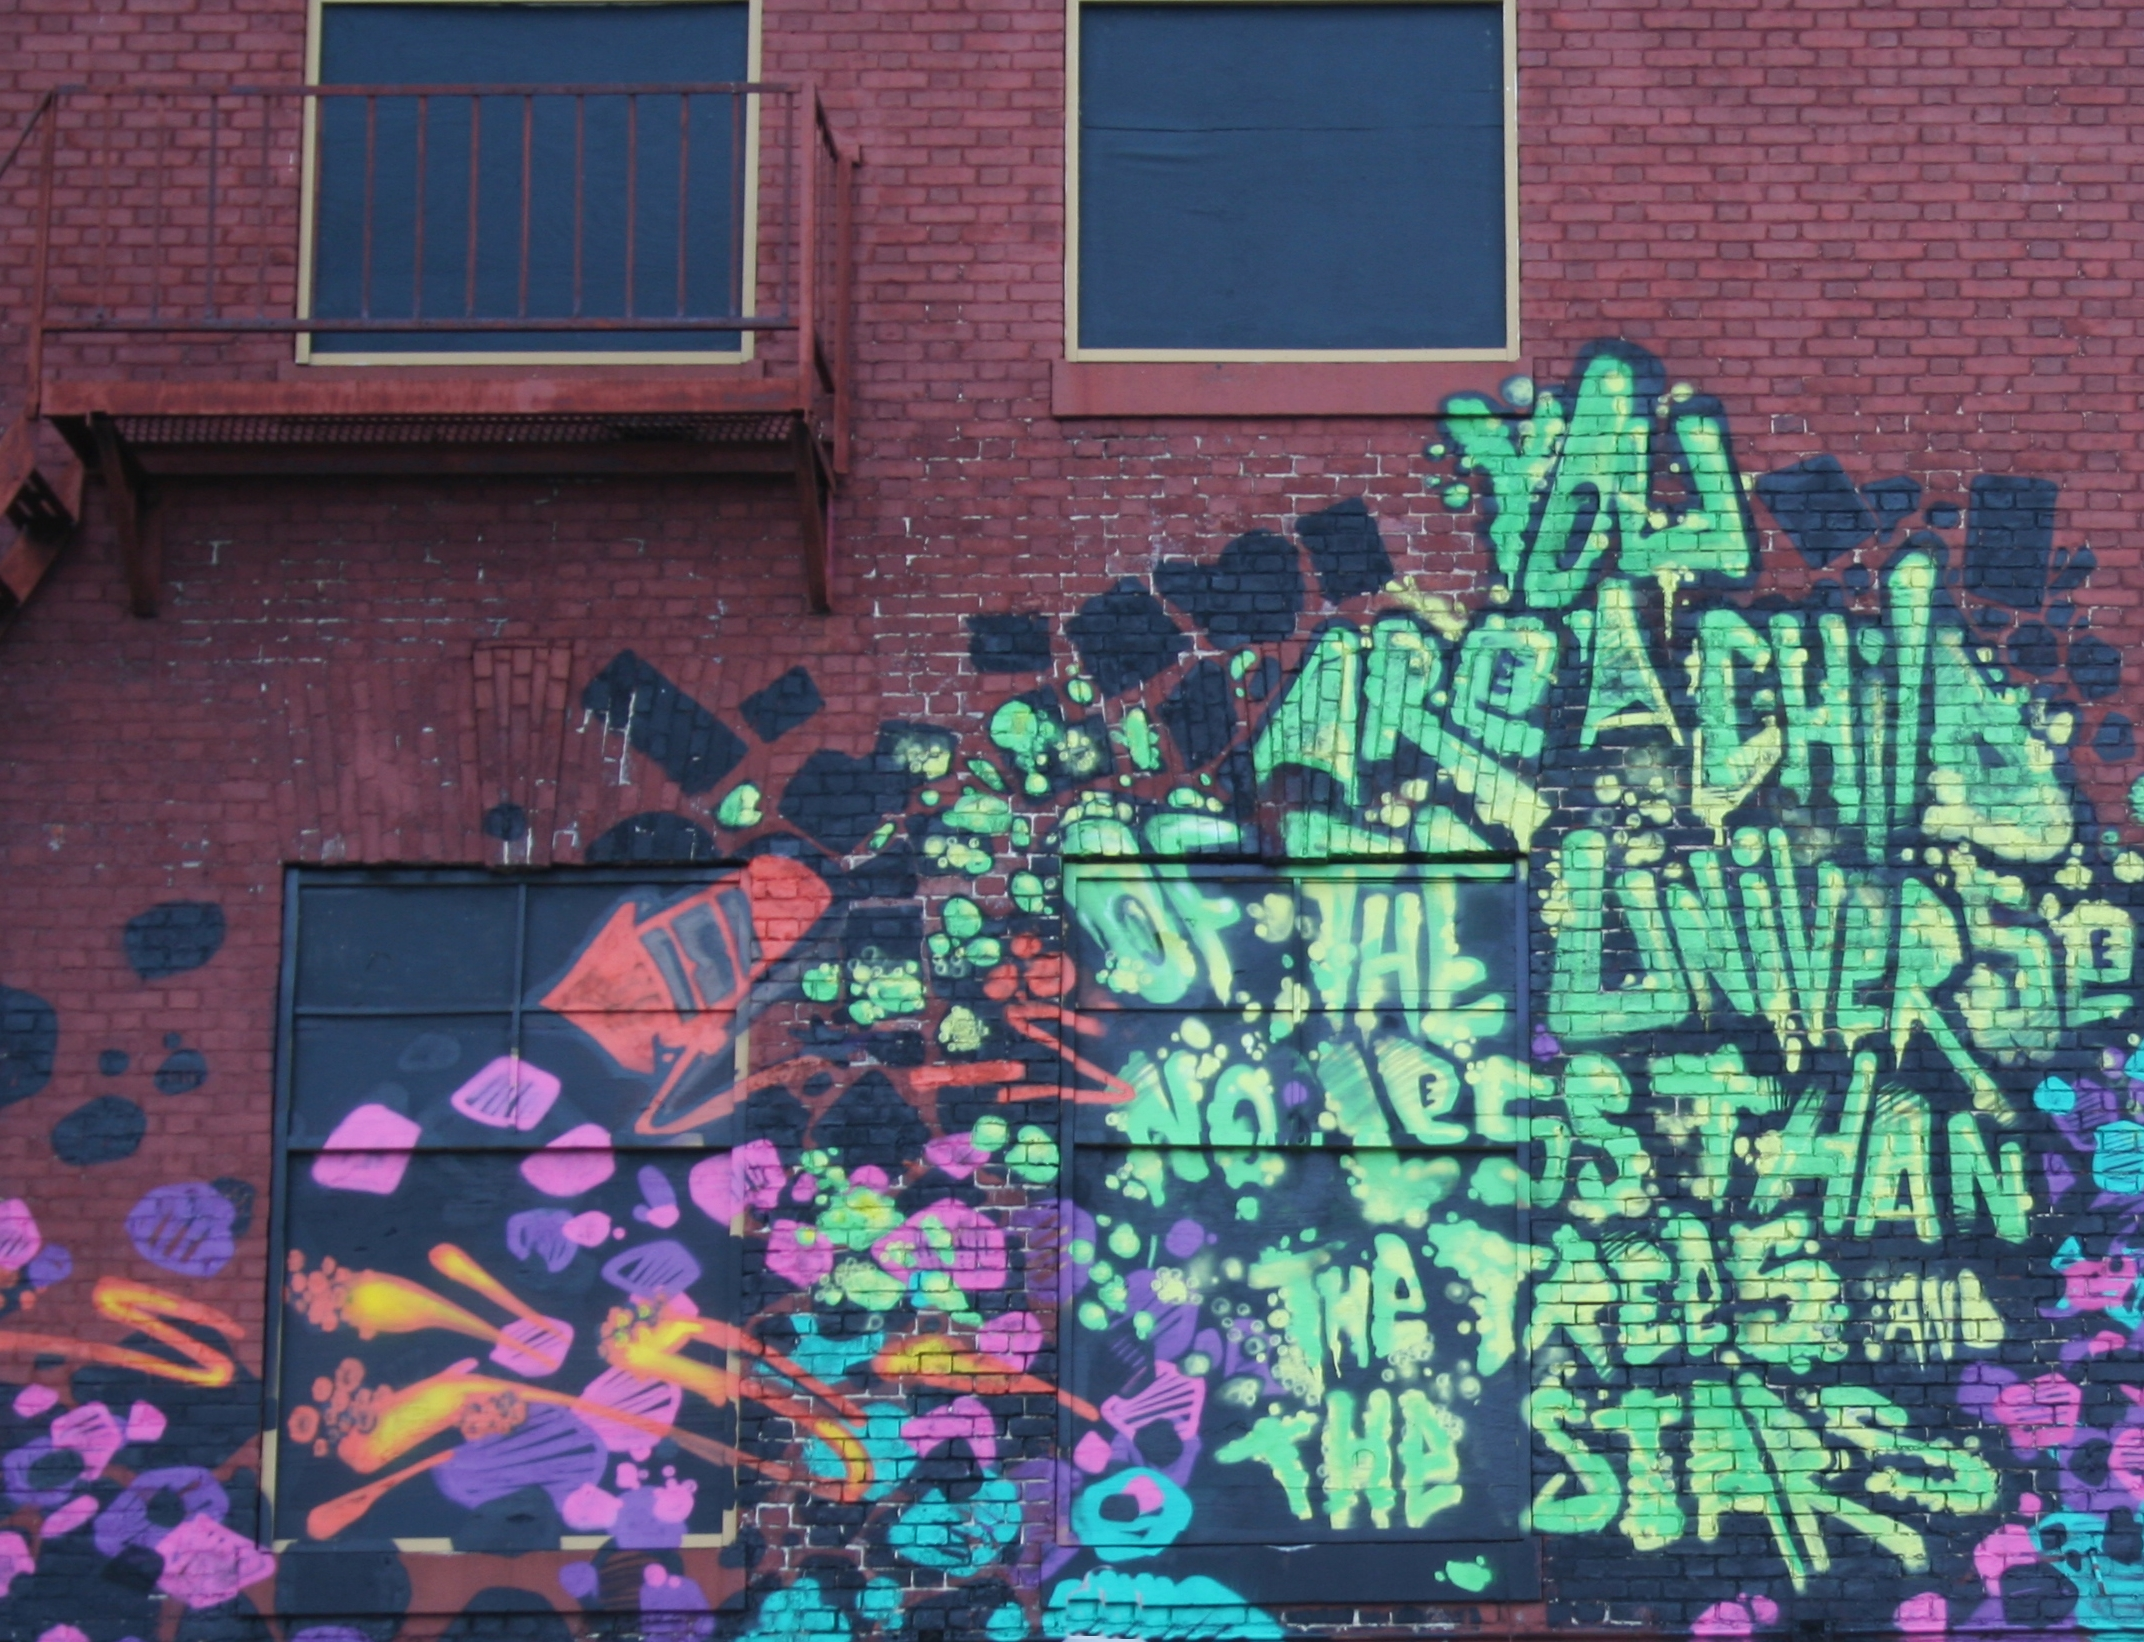 Grief and photography inspiration from graffiti and murals for Mural inspiration